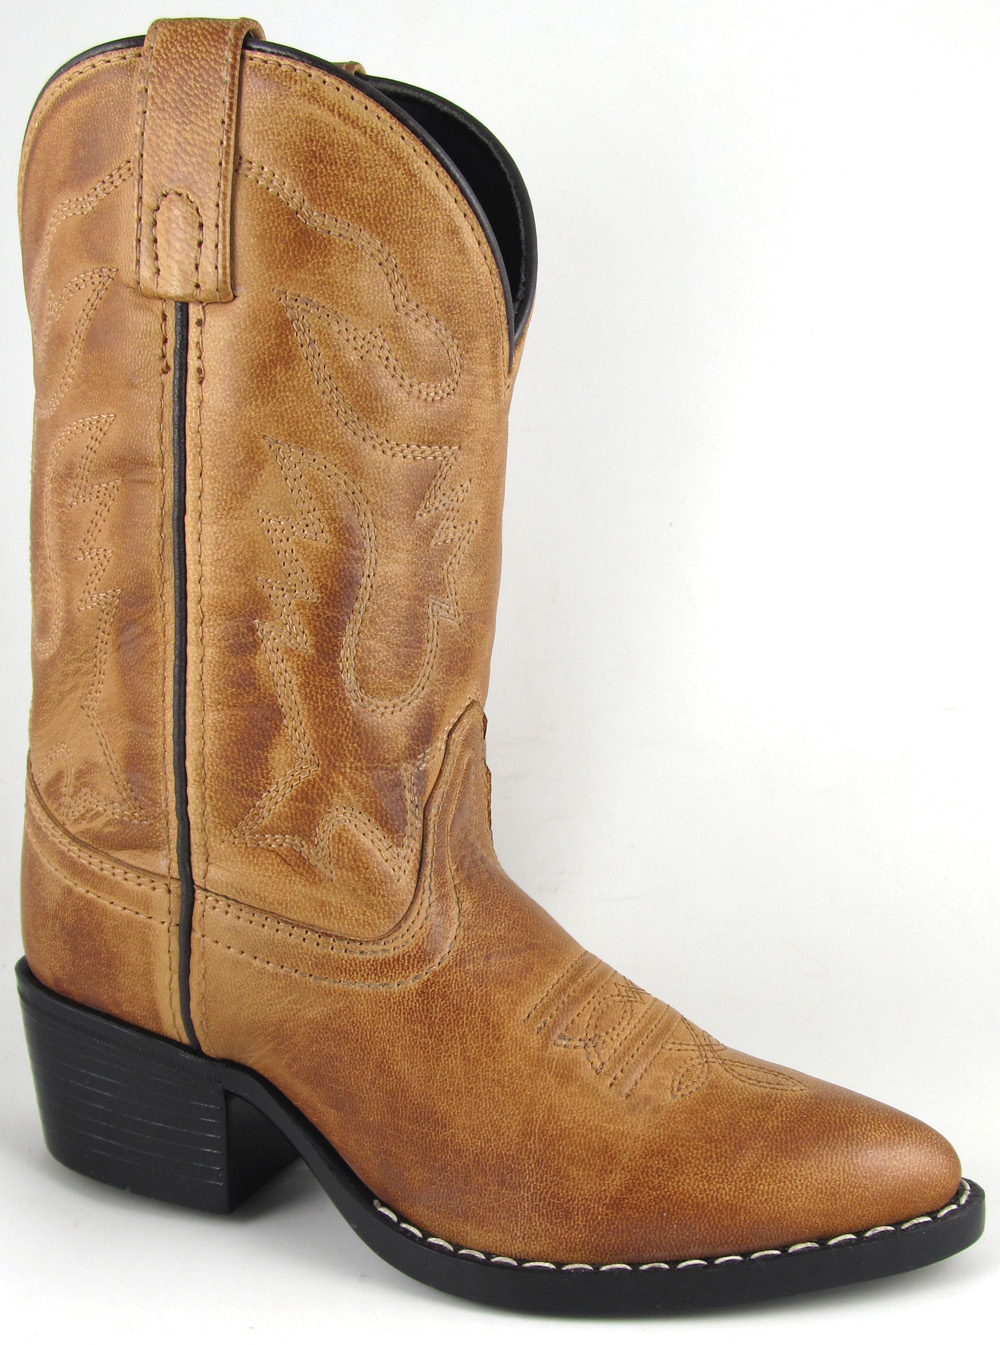 Smoky Mountain Child's Dakota J-Toe Western Boot